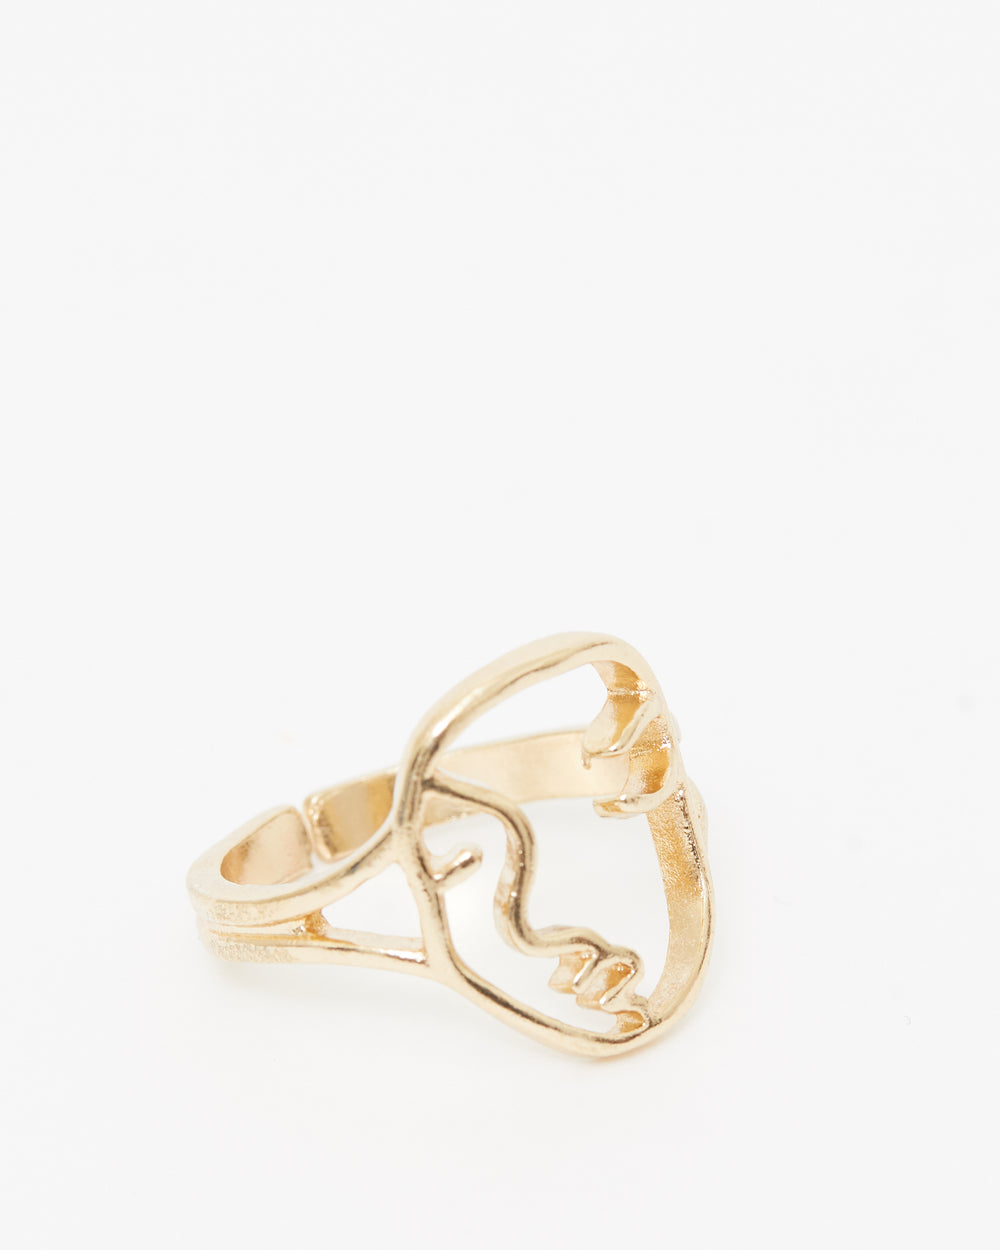 Silhouette Gold Ring